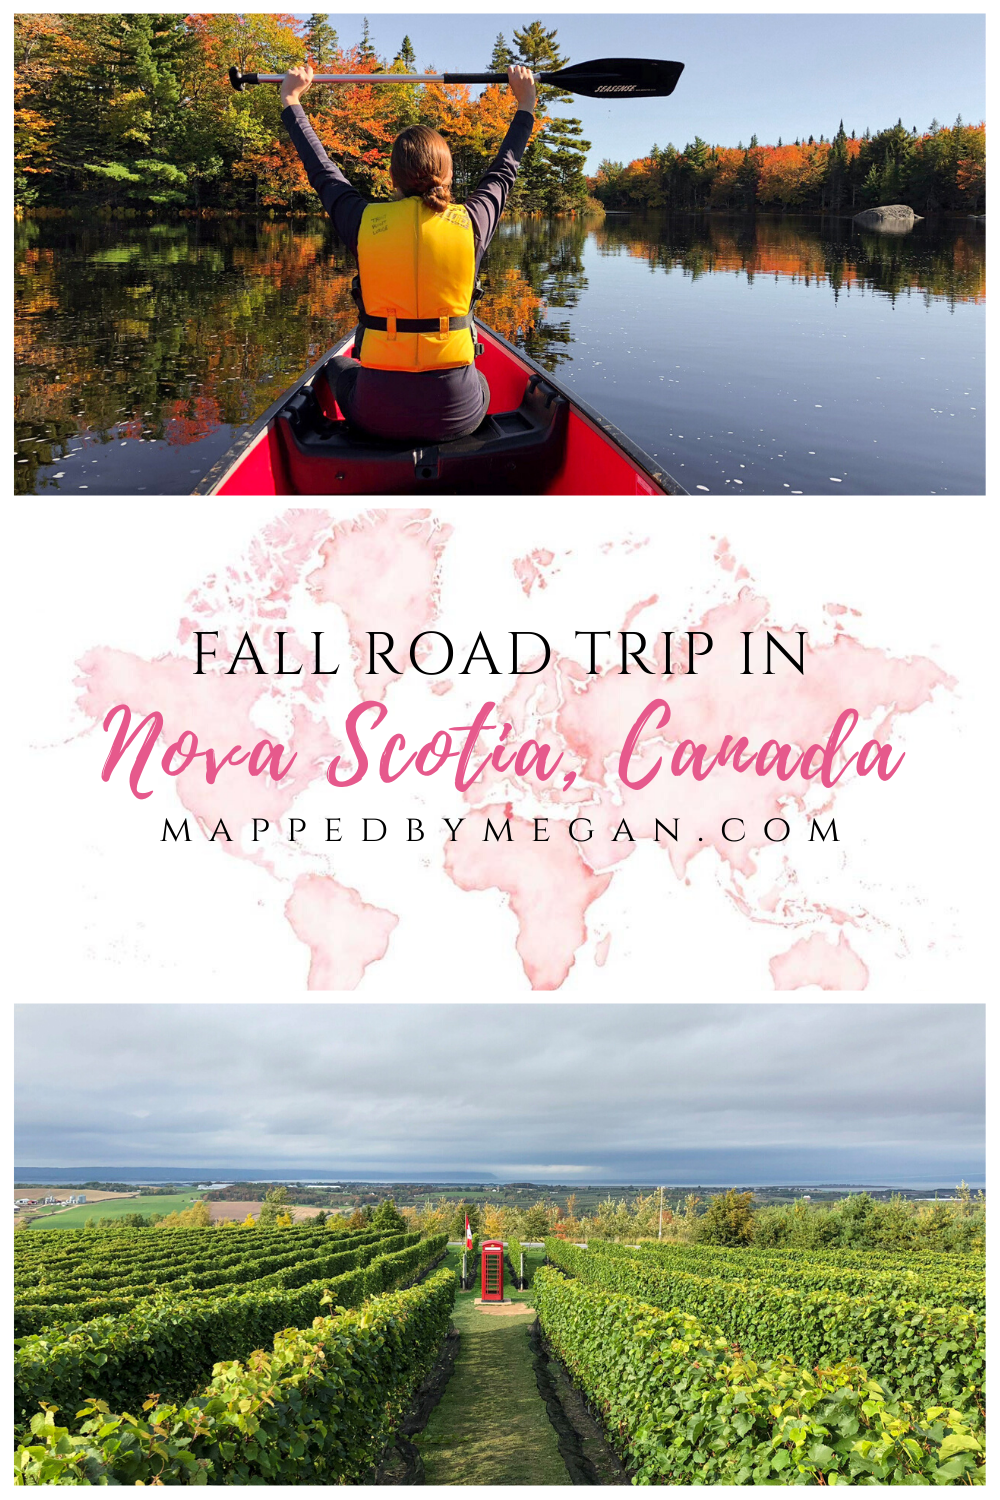 Nova Scotia is the perfect romantic, fall road trip destination. Read our one week Nova Scotia road trip itinerary filled with food, wine, and fall foliage.